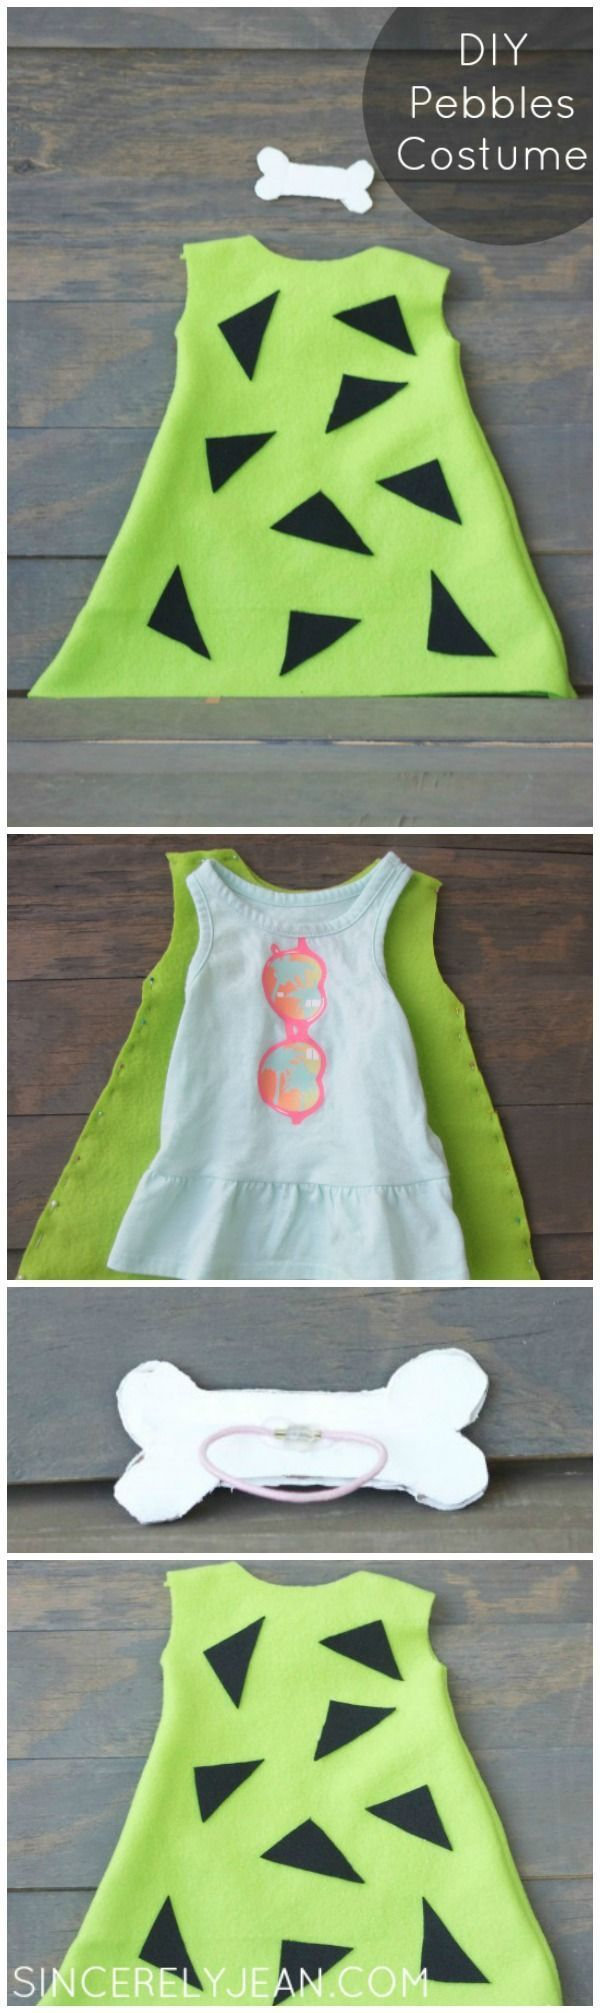 DIY Pebbles Costume Pinterest - perfect Halloween costume for young girl or baby! | http://www.sincerelyjean.com